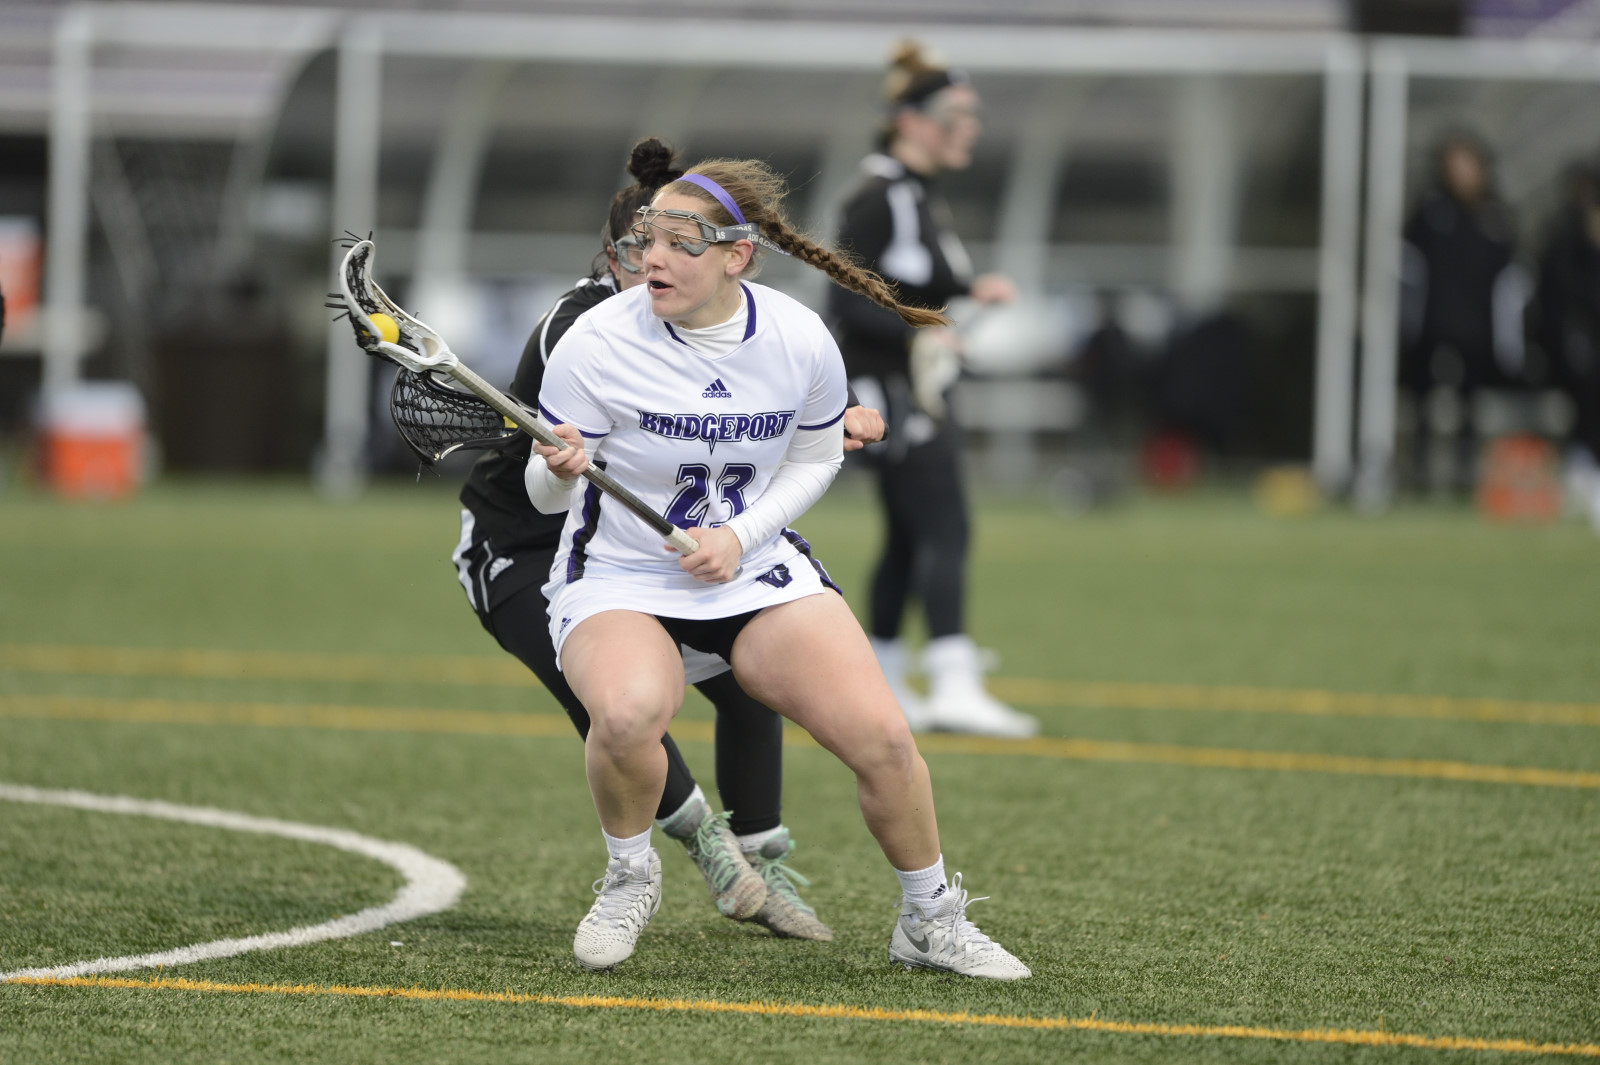 Courtney Forry Amasses 12 Points With Six Goals And Six Assists As UB Women's Lacrosse Tops Dominican, 19-15